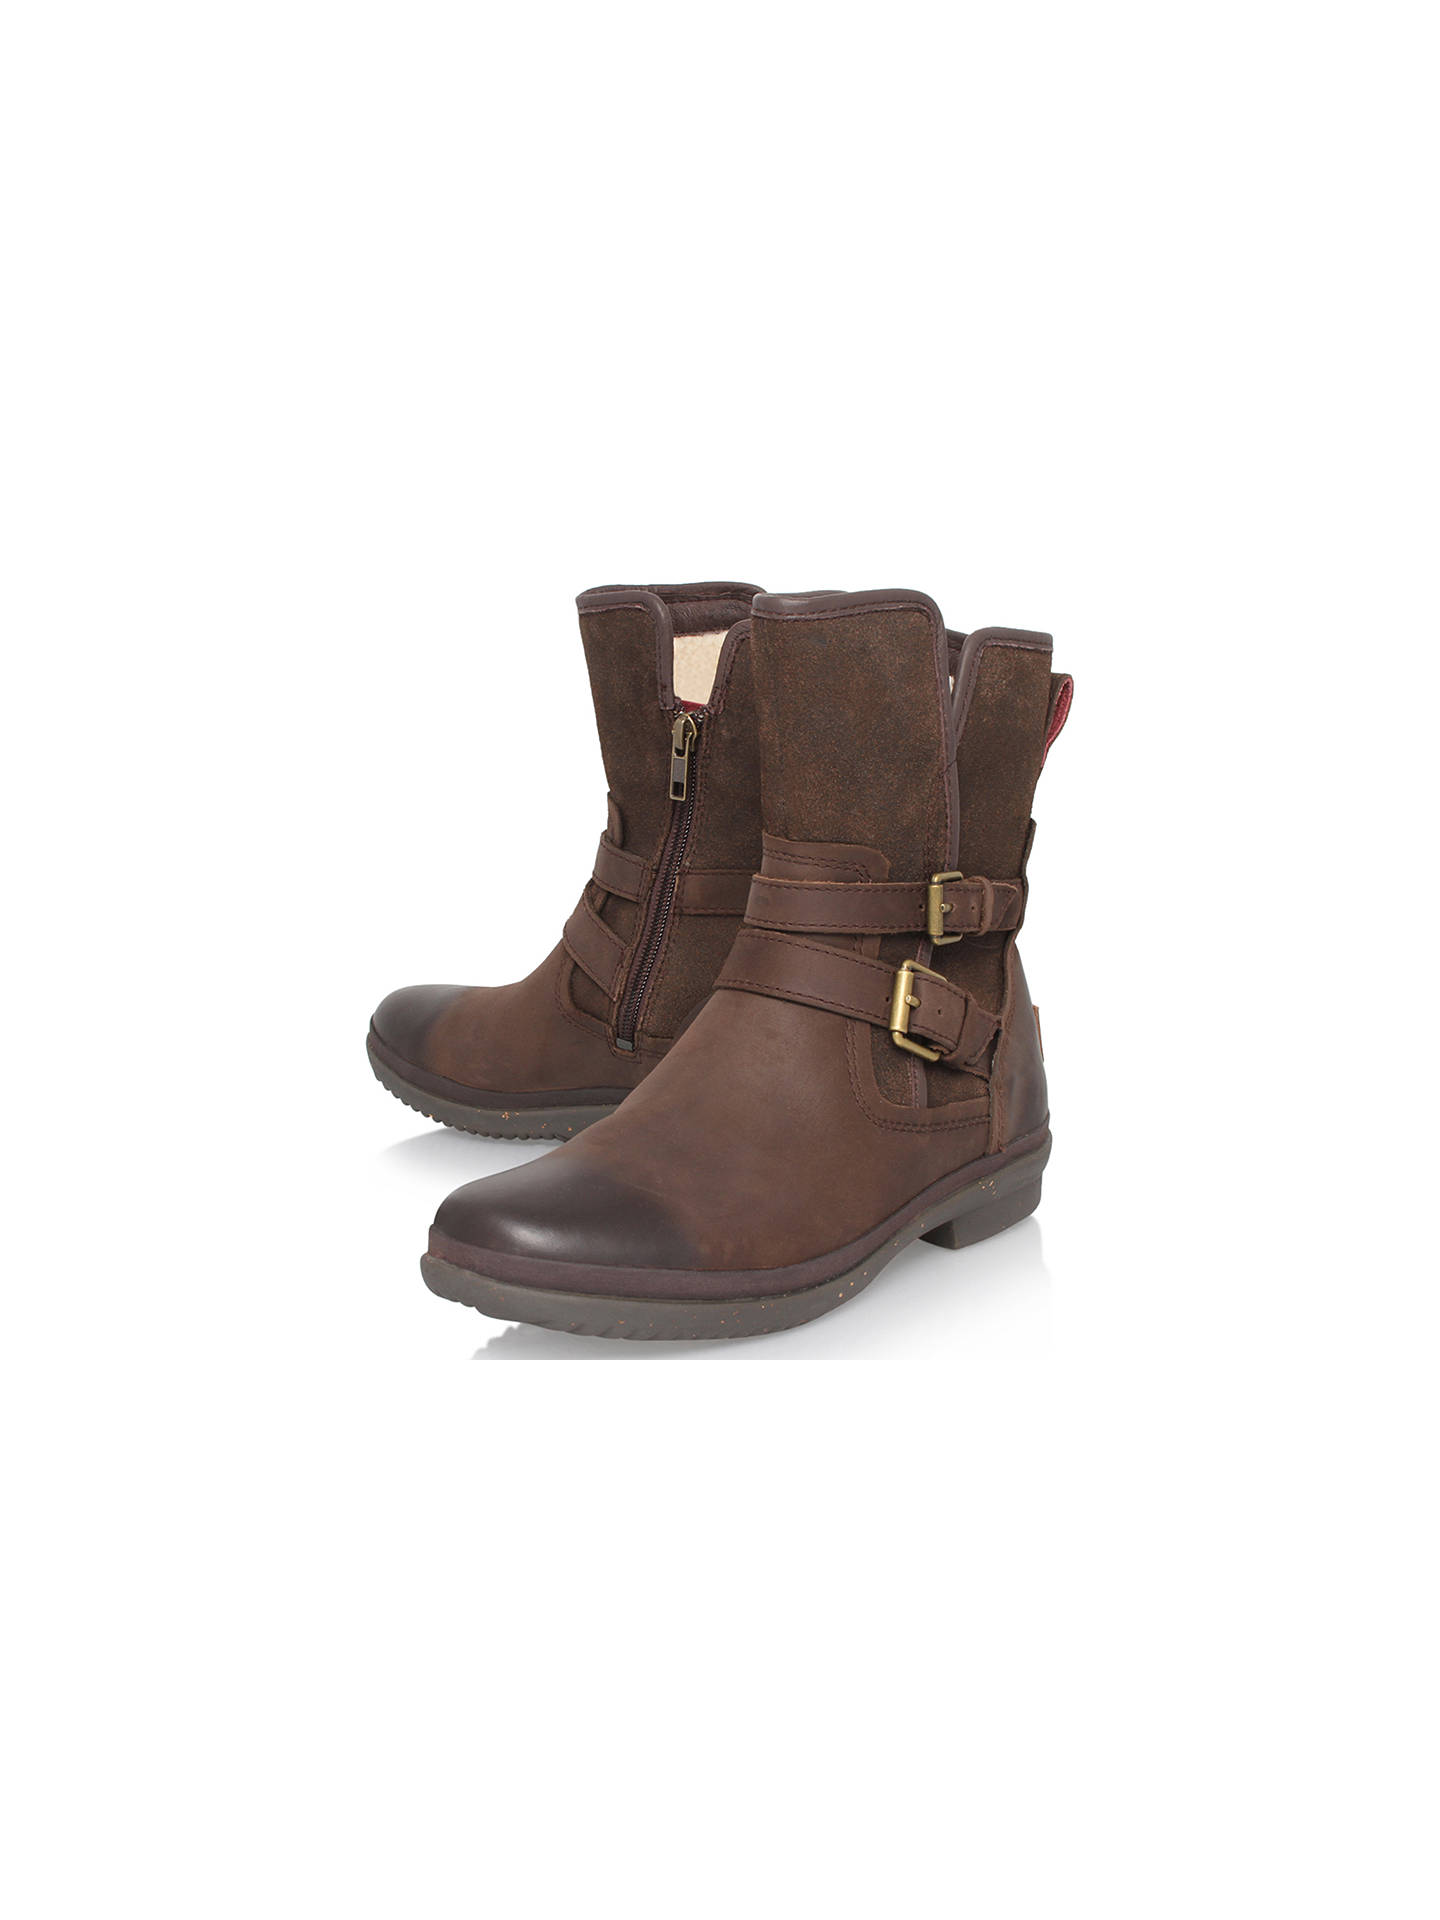 51bbdd12cbe UGG Simmens Waterproof Ankle Boots at John Lewis & Partners